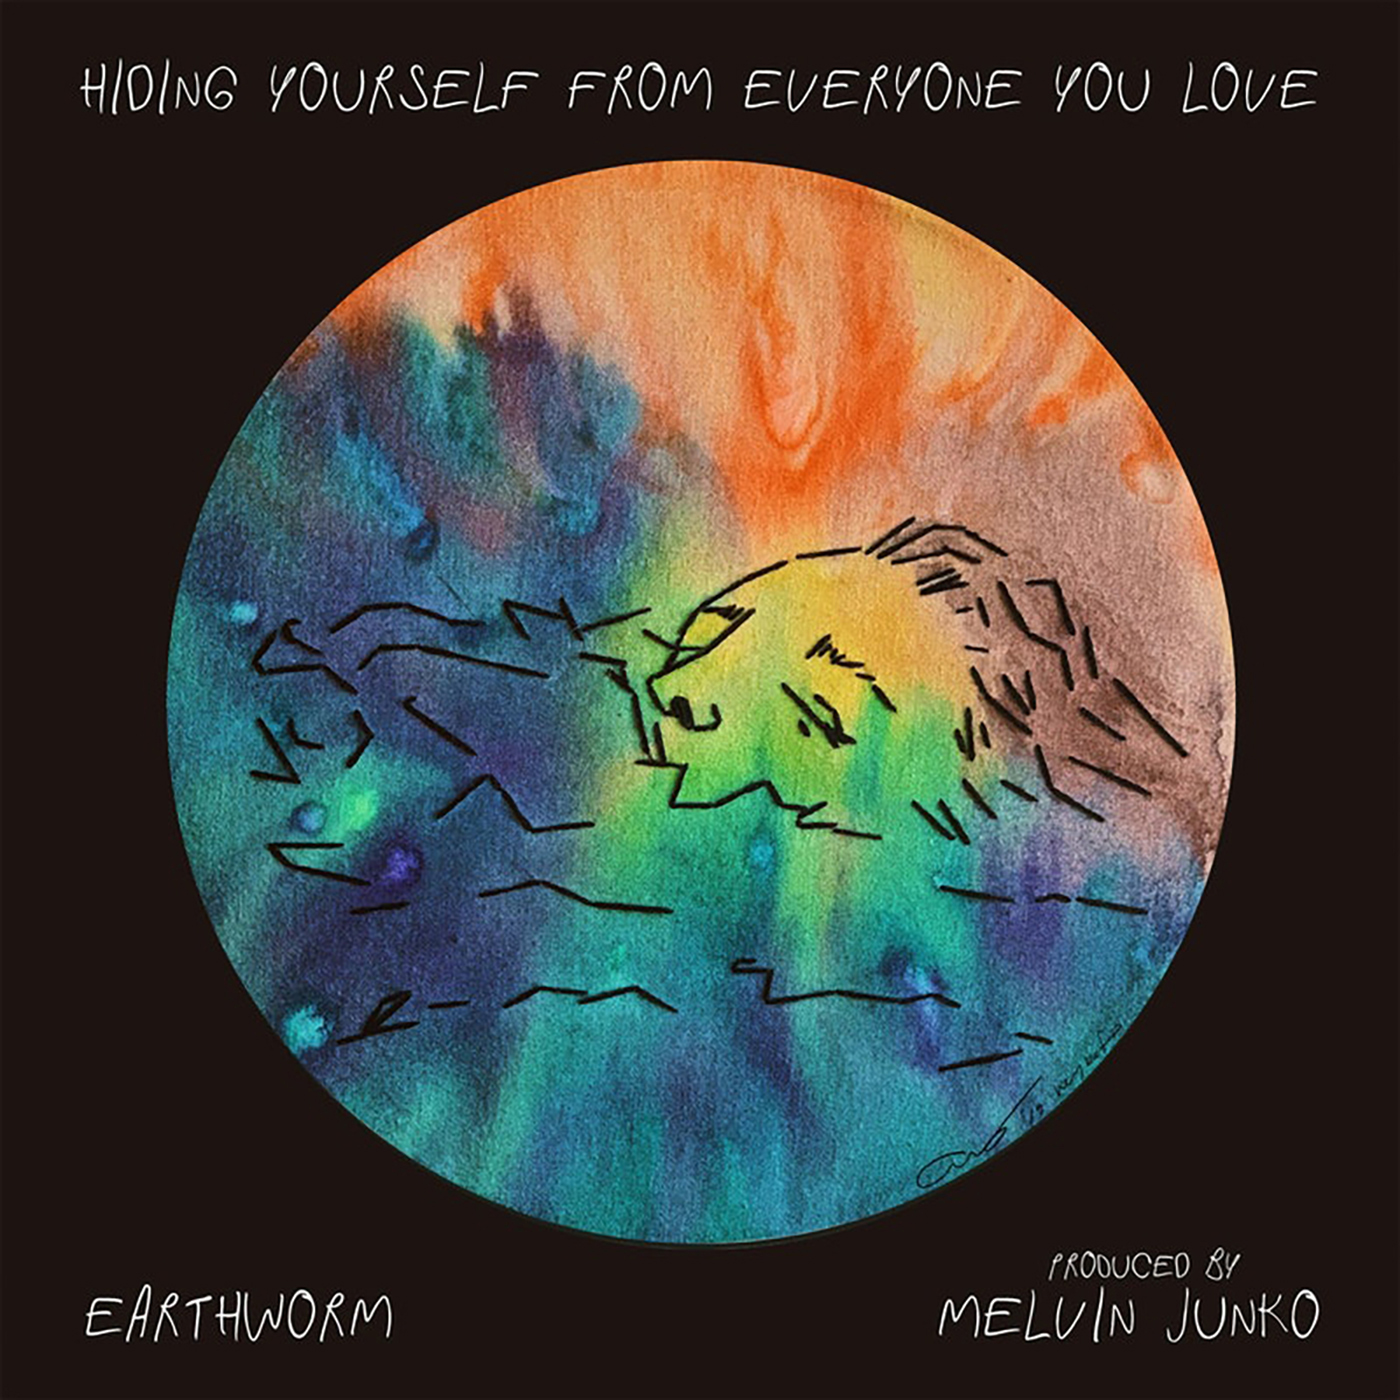 Earthworm | Hiding Yourself From Everyone You Love | Self-Released